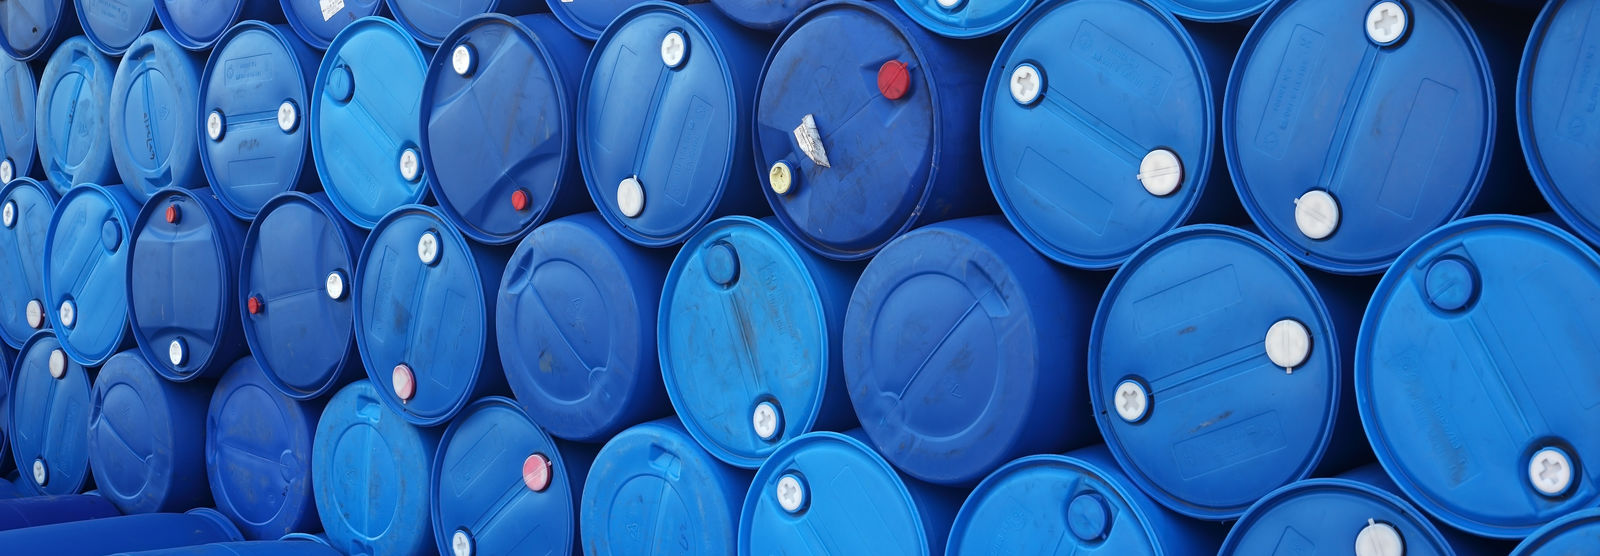 blue drums sealed and stacked in line